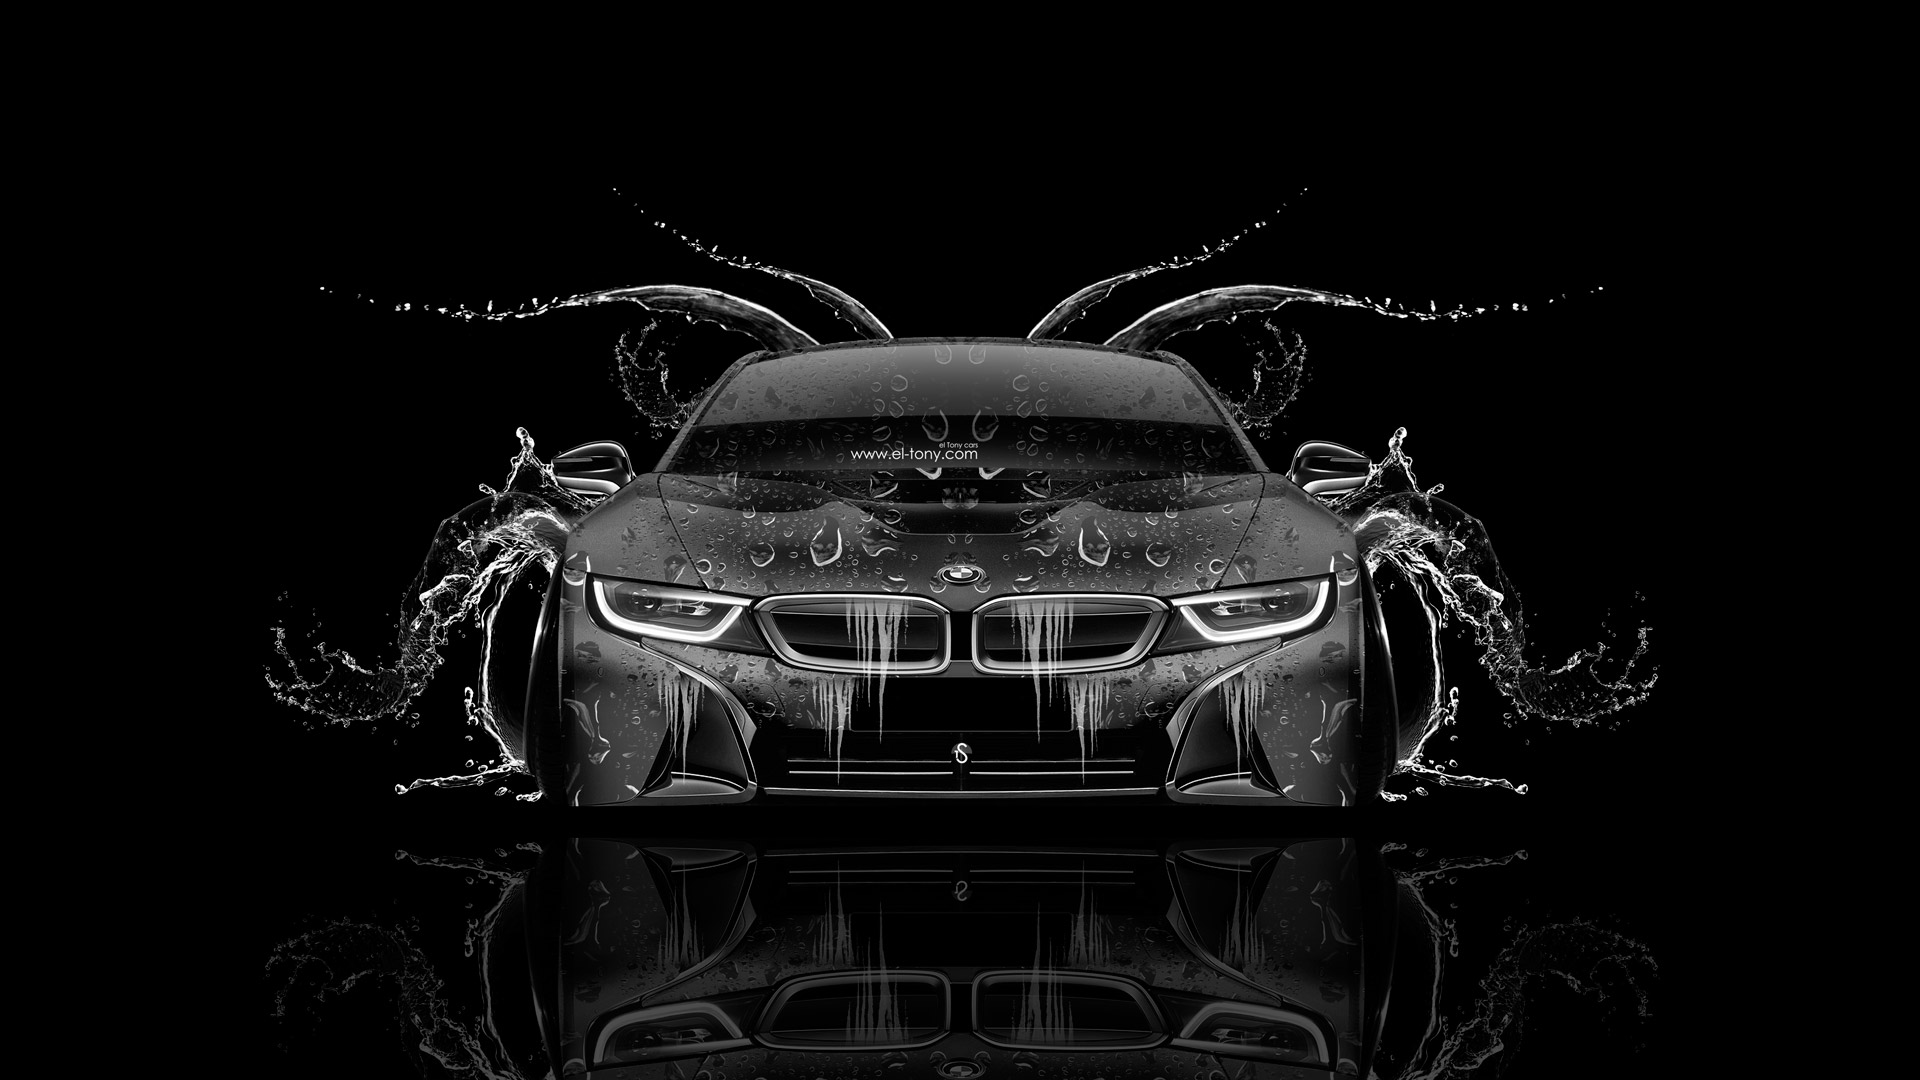 Bmw I8 Front Water Car 2014 El Tony